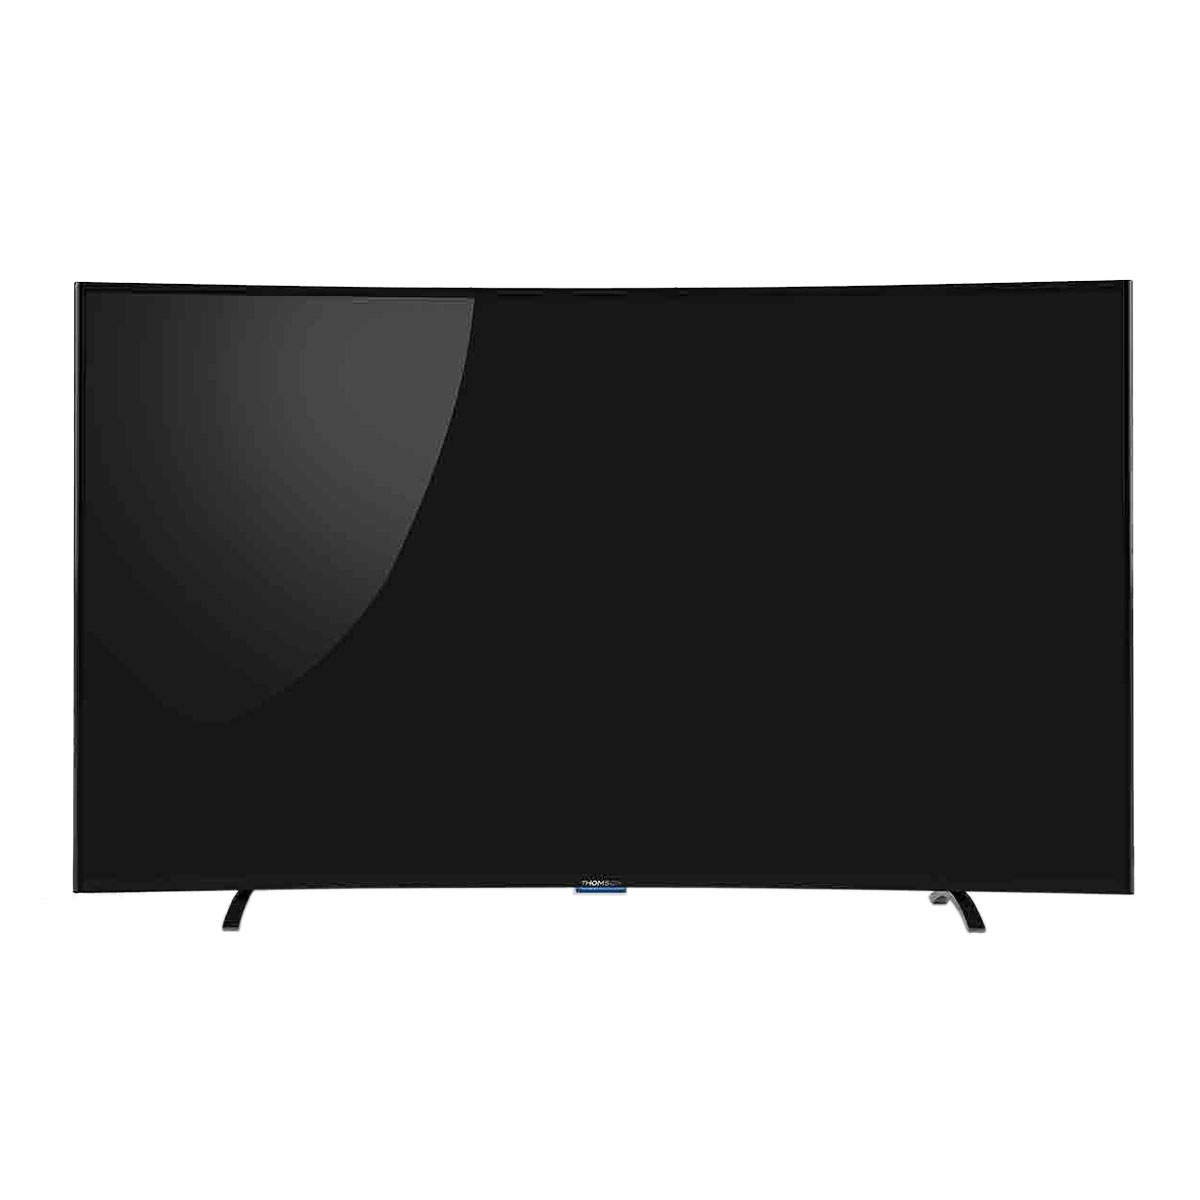 Thomson 55ua8596 tv thomson sur - Tv incurve 140 cm ...